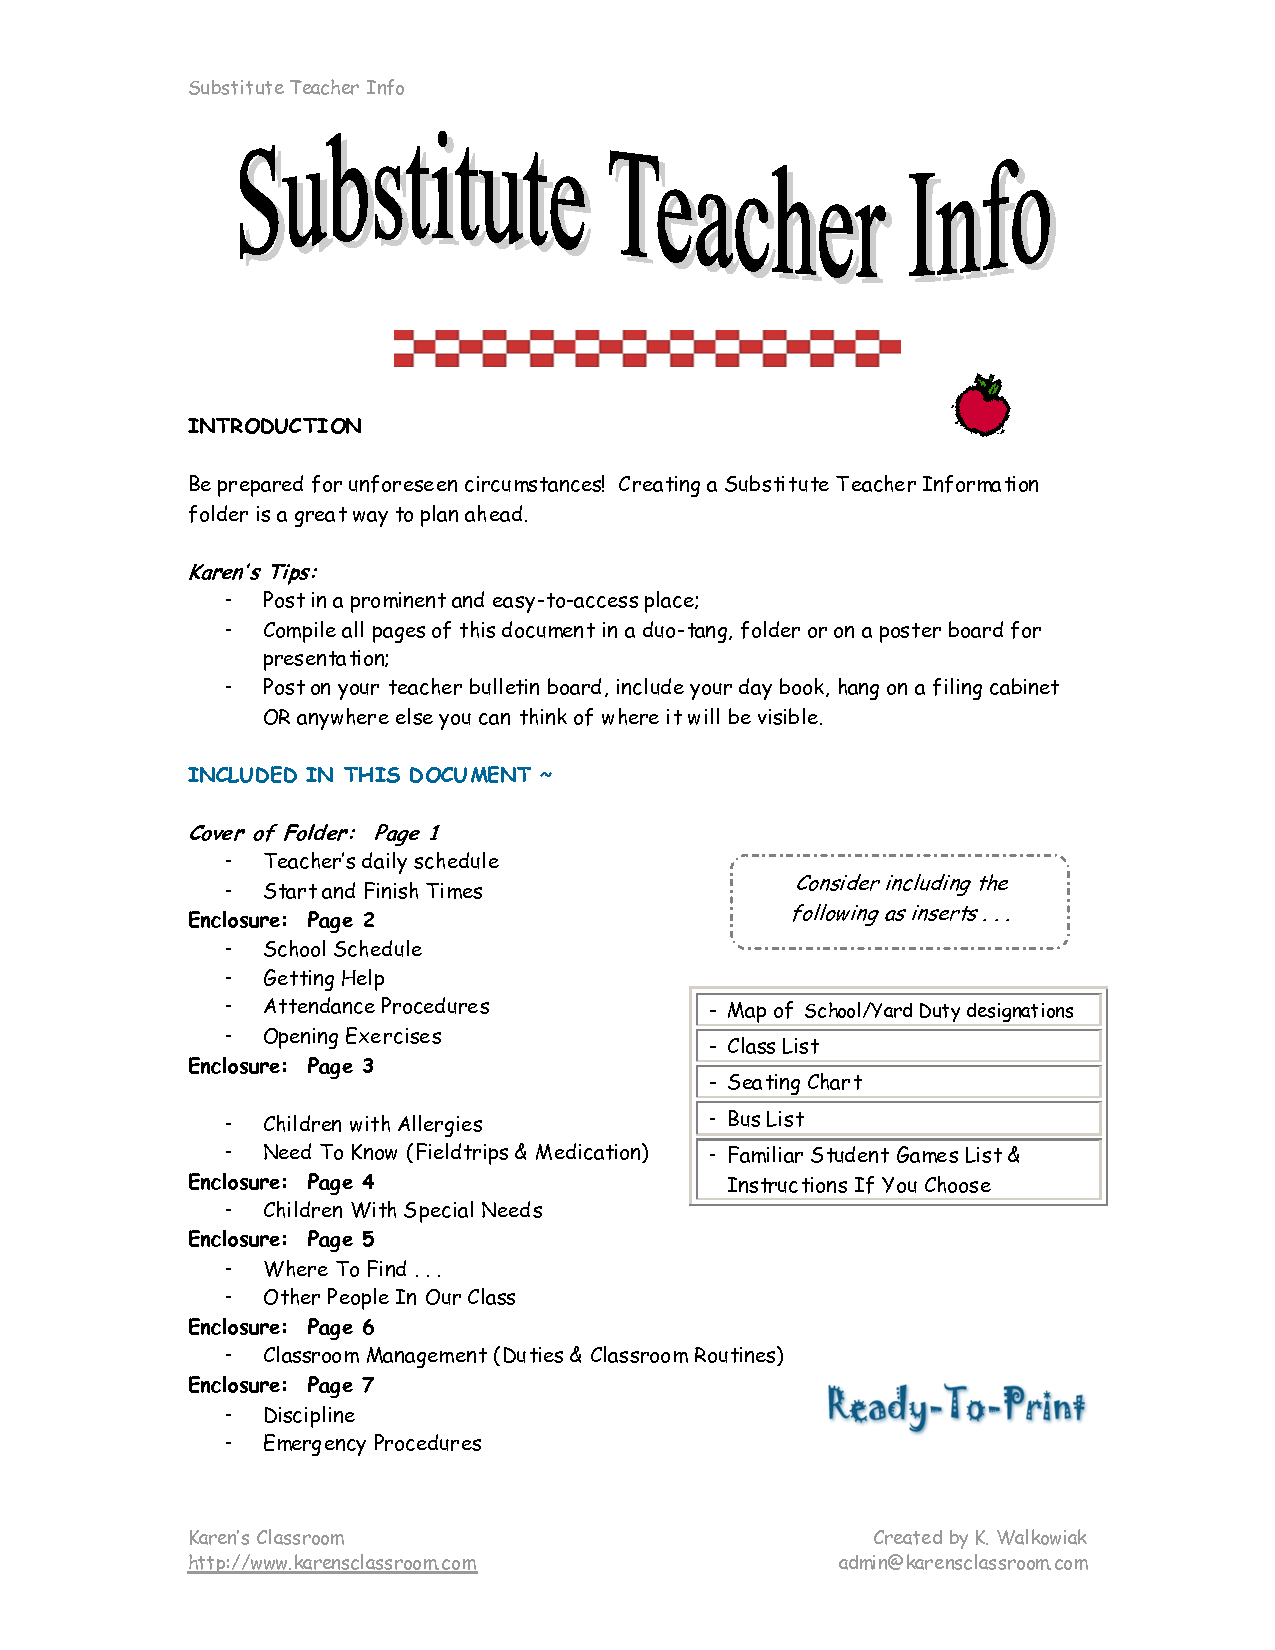 Job Description For Substitute Teacher For Resume 2016 Substitute Teacher Job Description